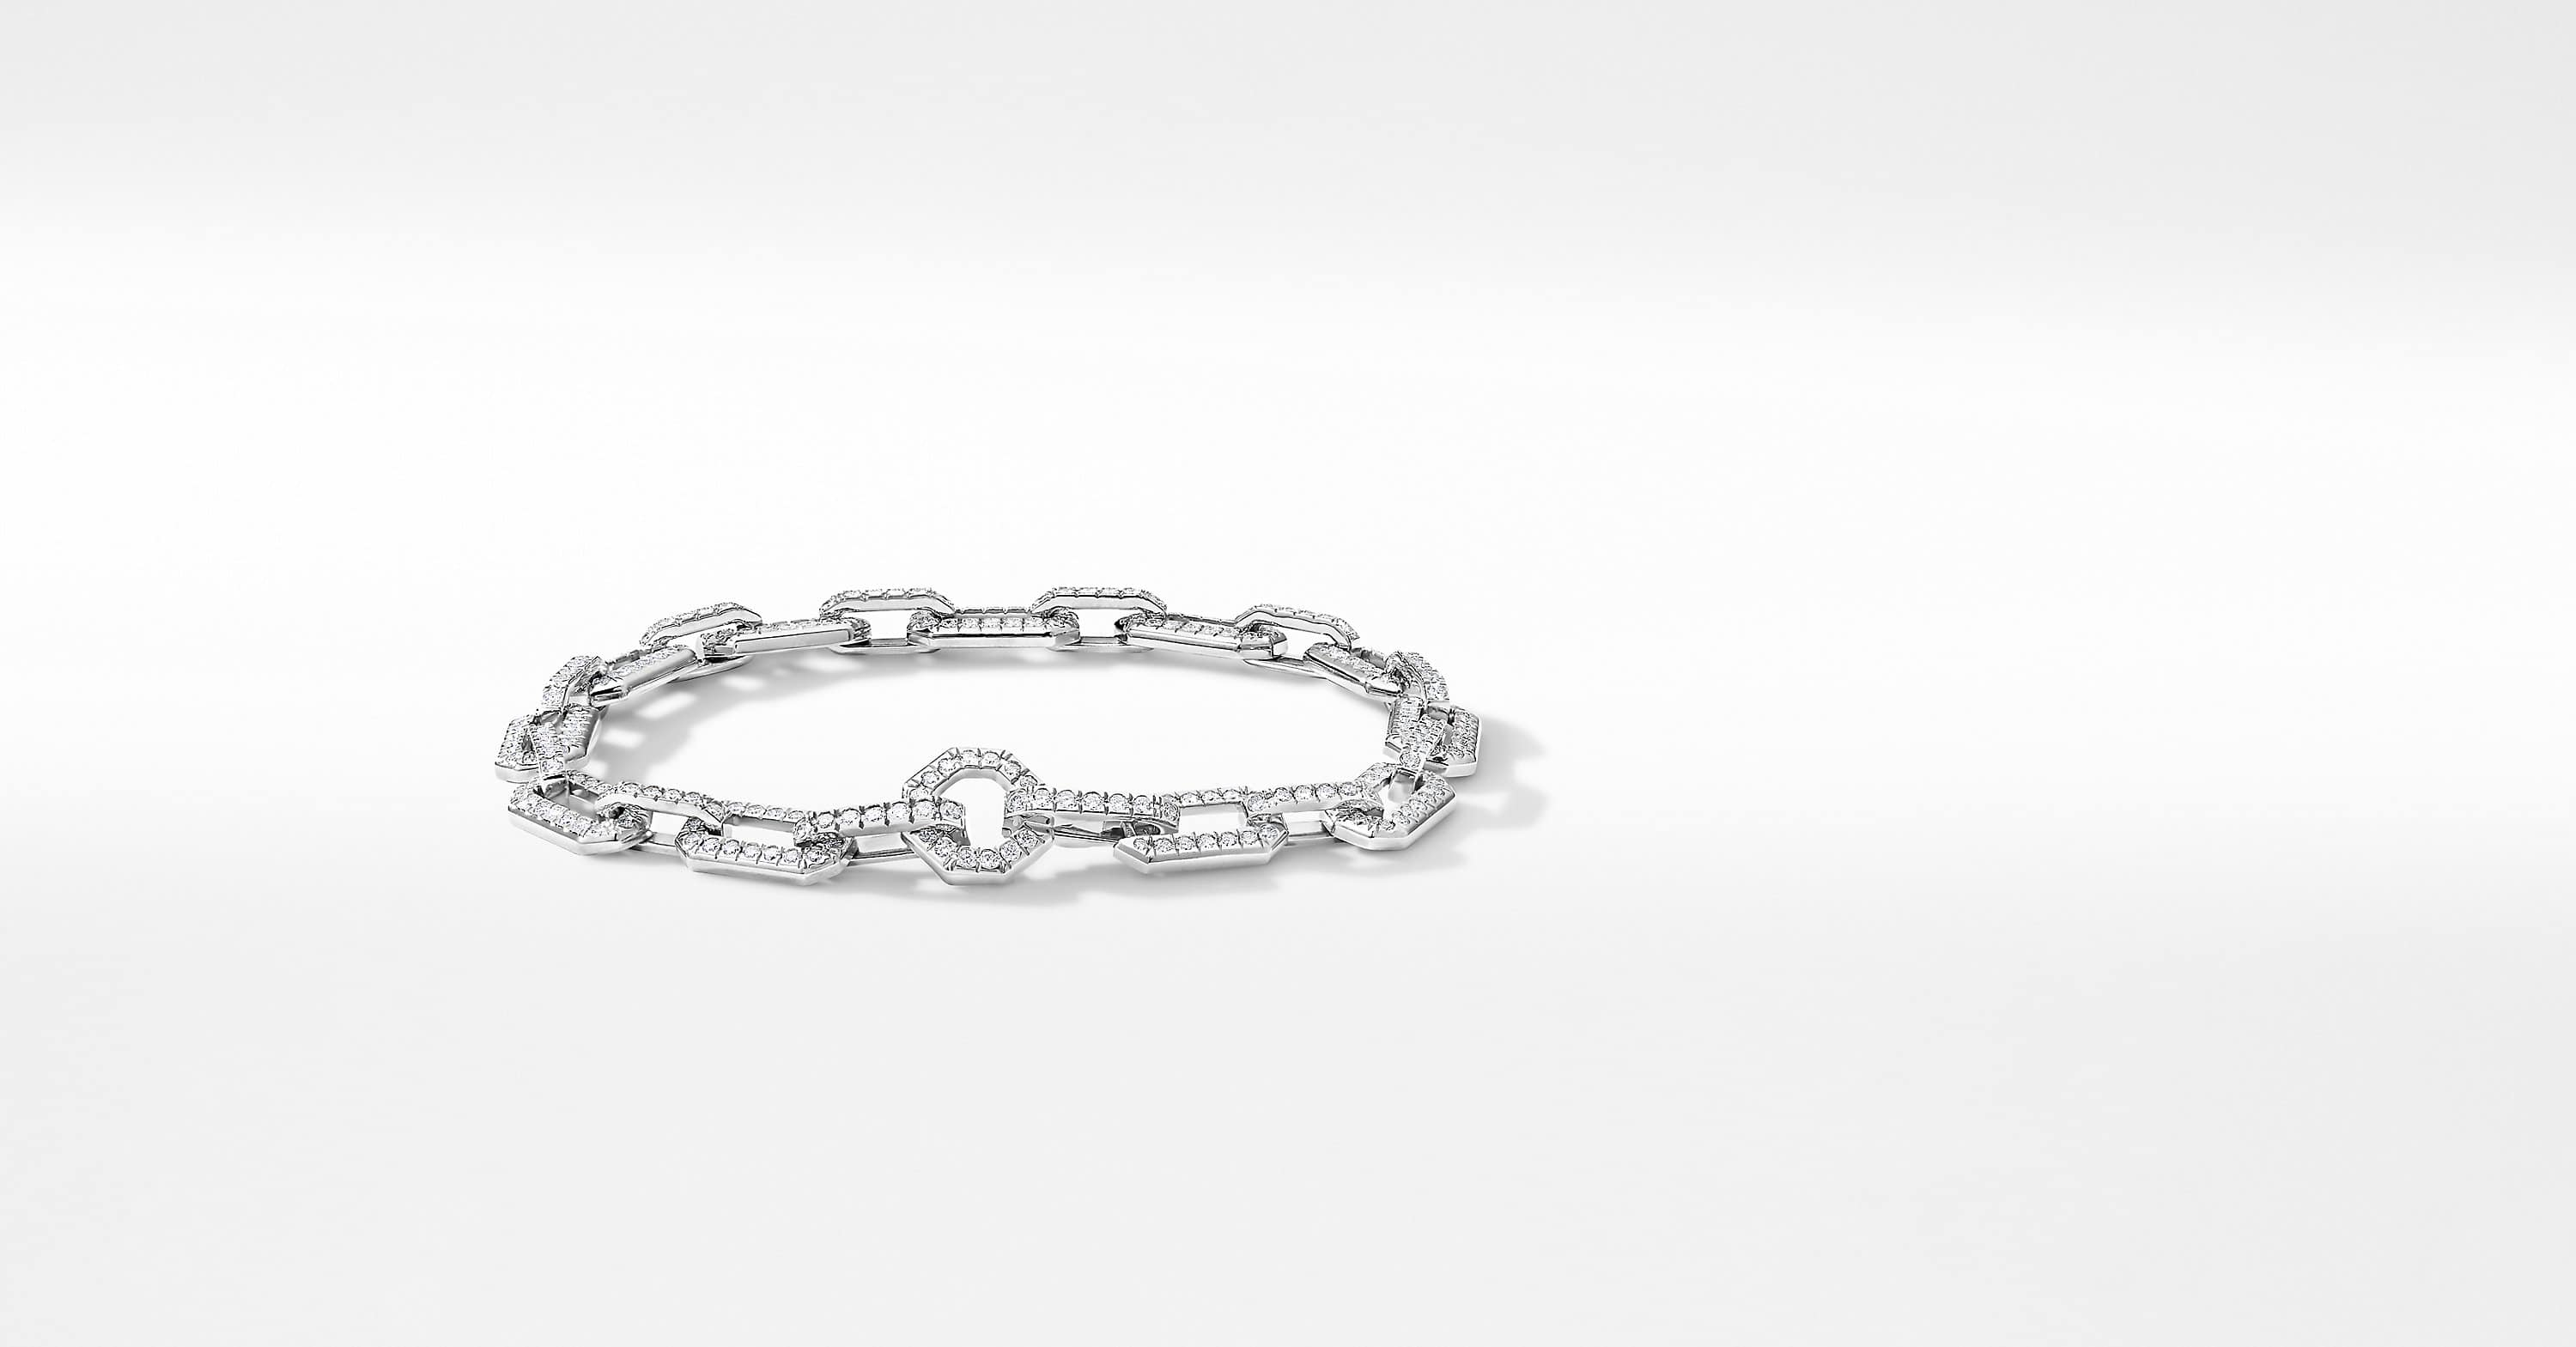 Starburst Chain Bracelet in 18K White Gold with Pavé